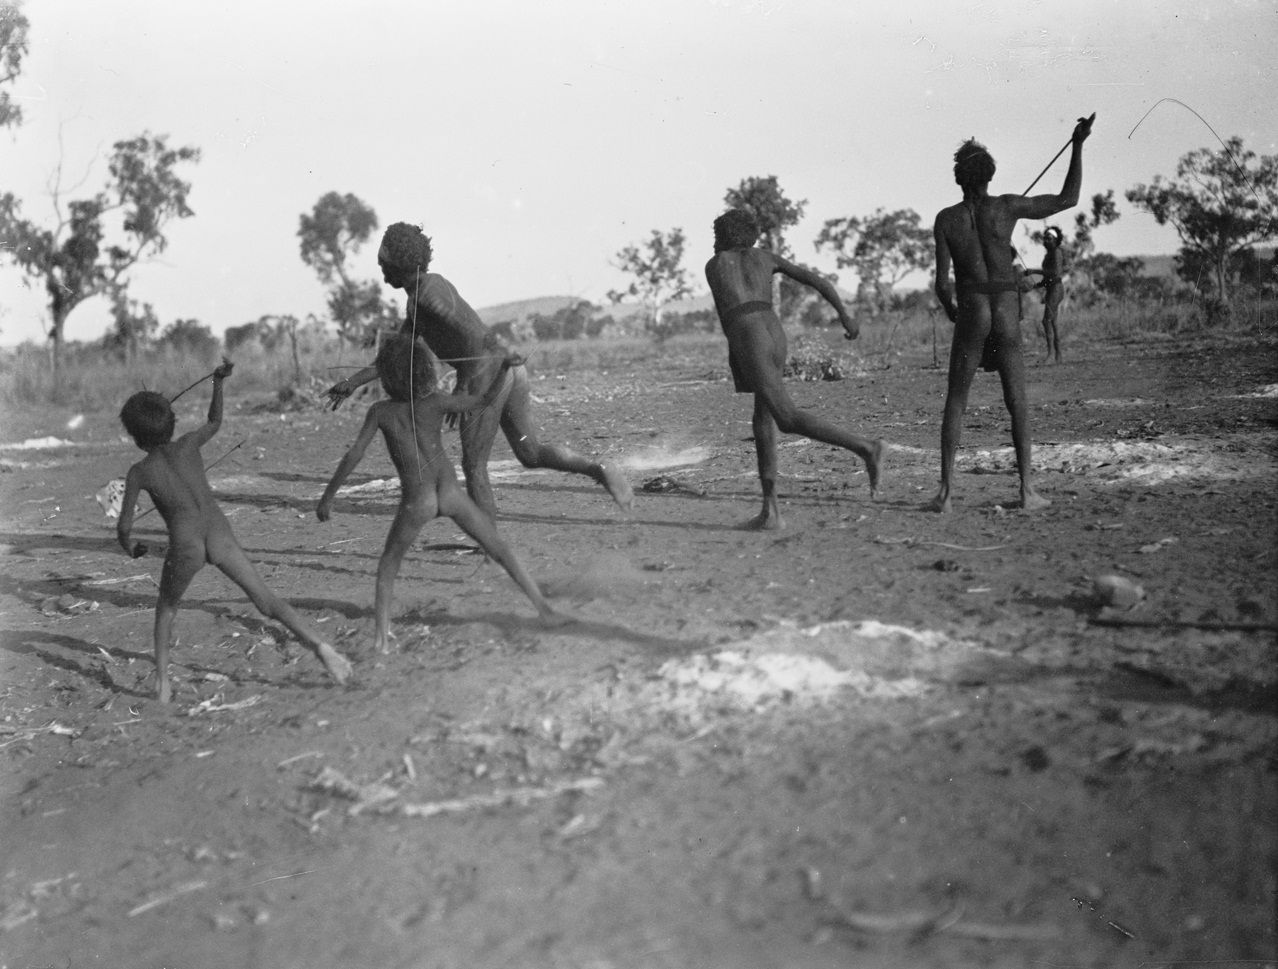 How were Indigenous Australians treated in the late 1800's?